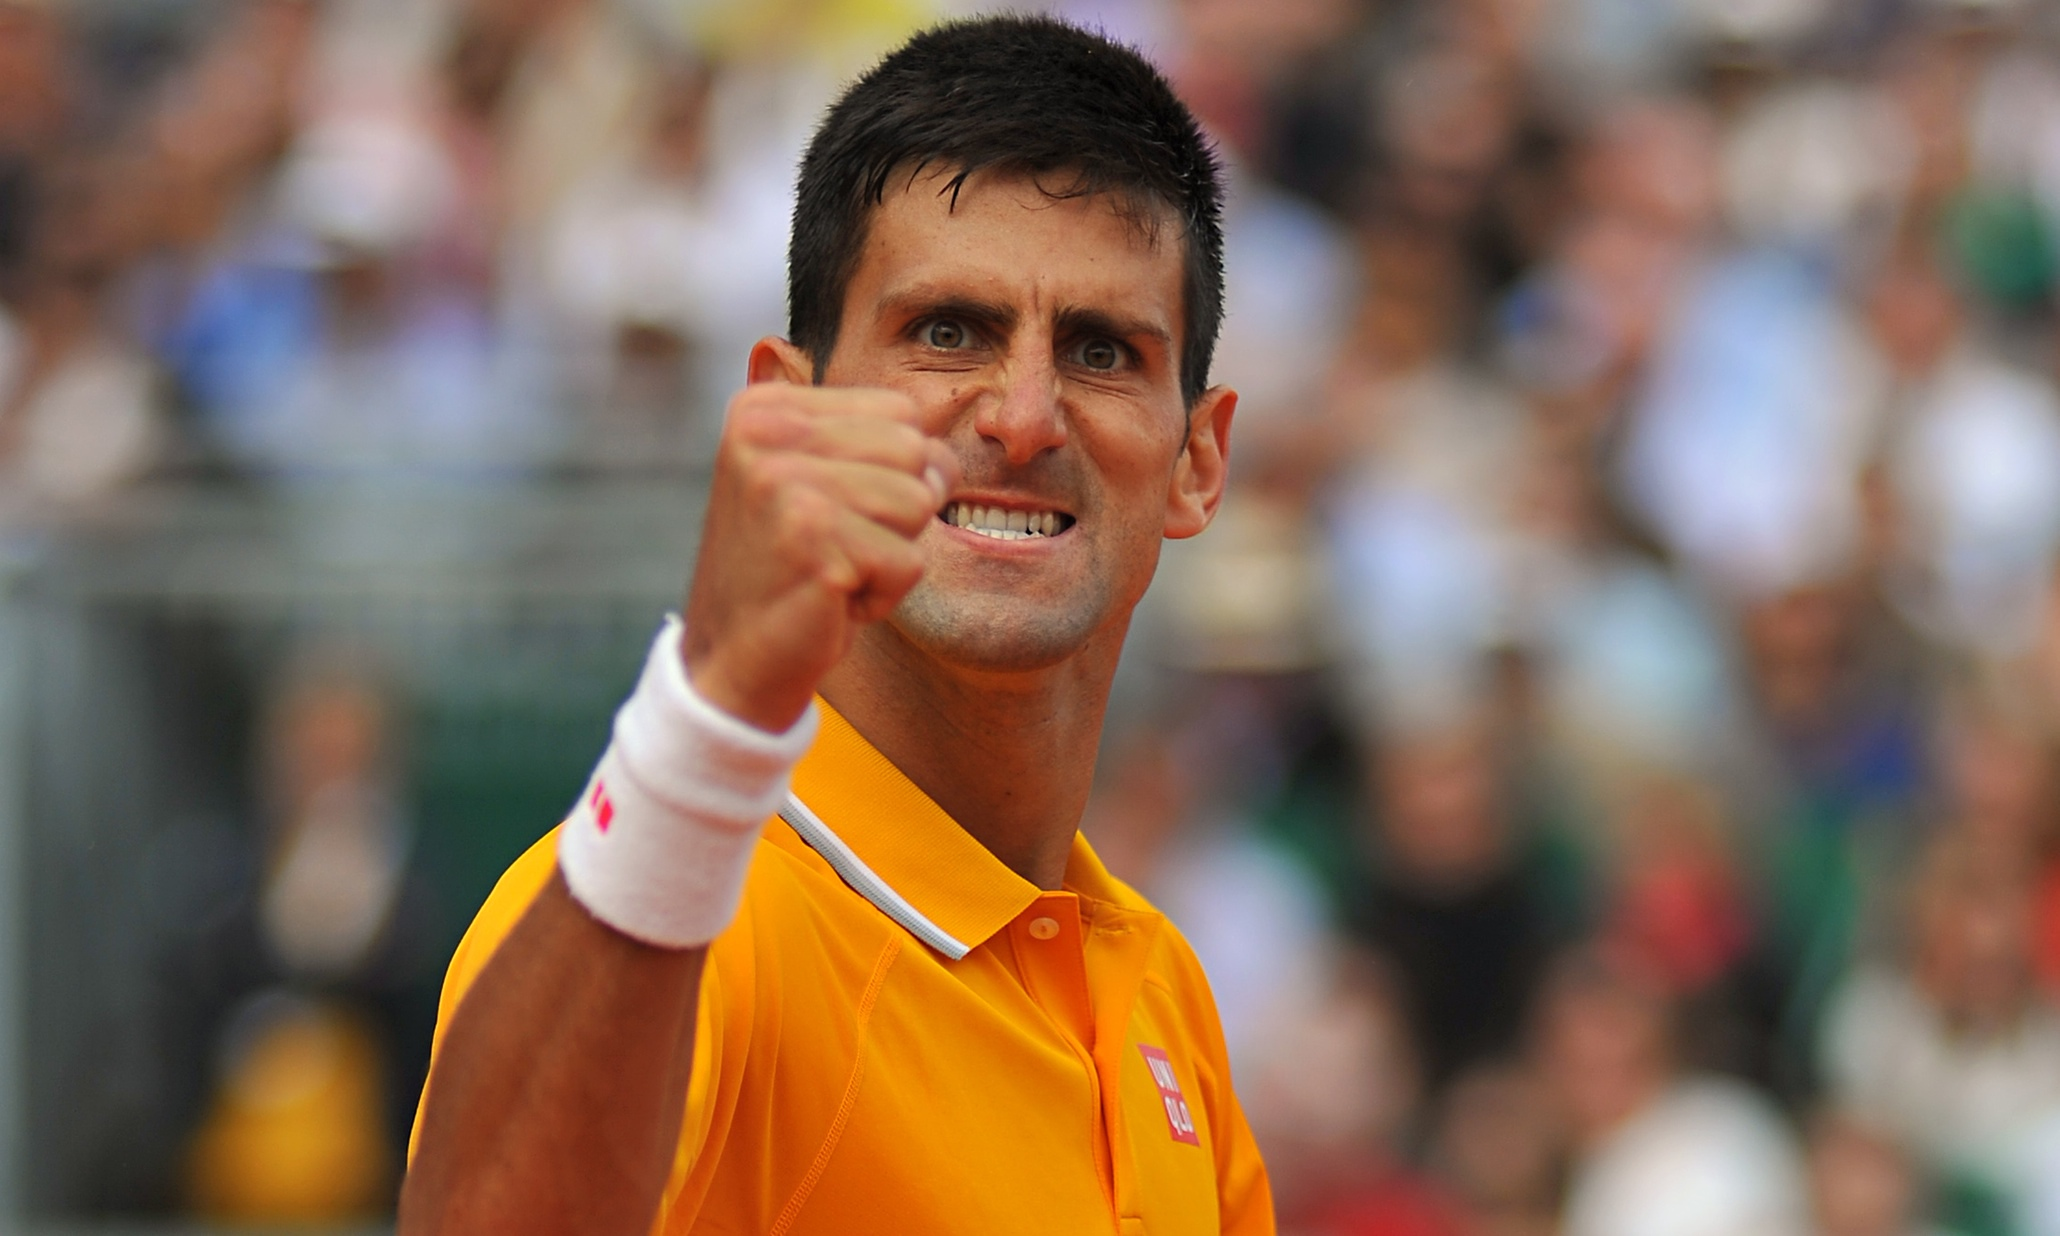 djokovic - photo #47